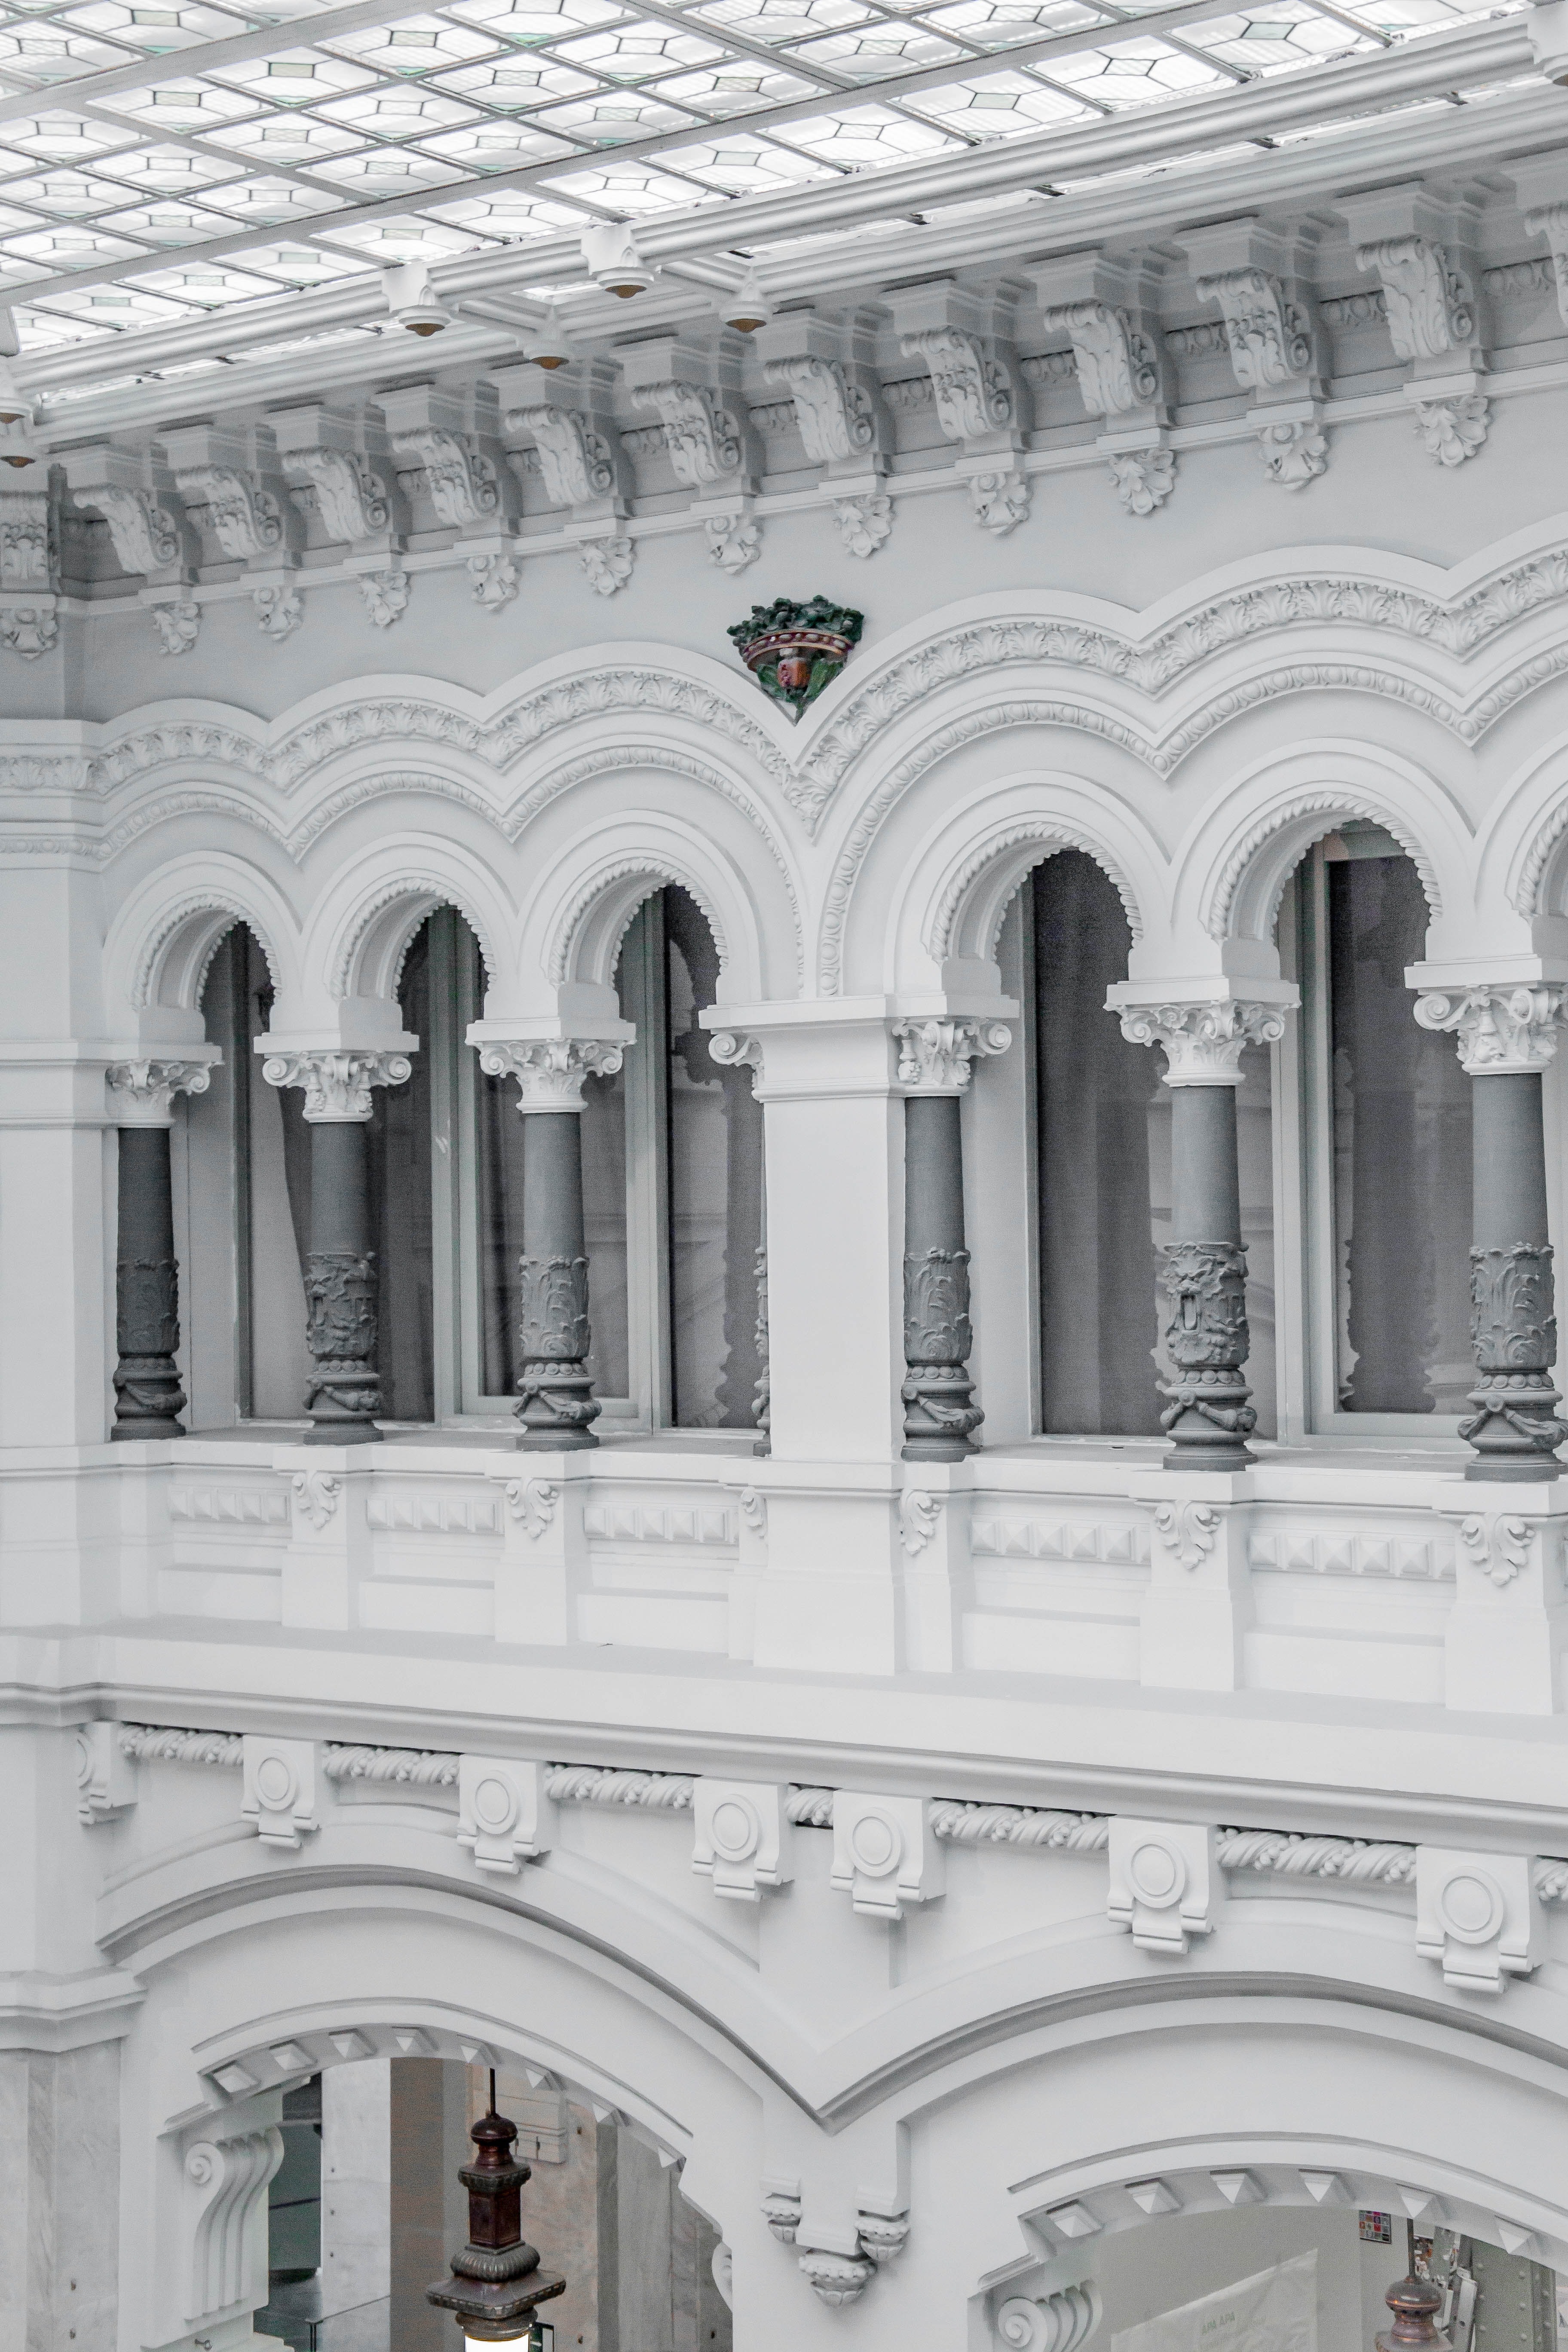 The facade of a building in Madrid has the classical architecture with Corinthian columns.